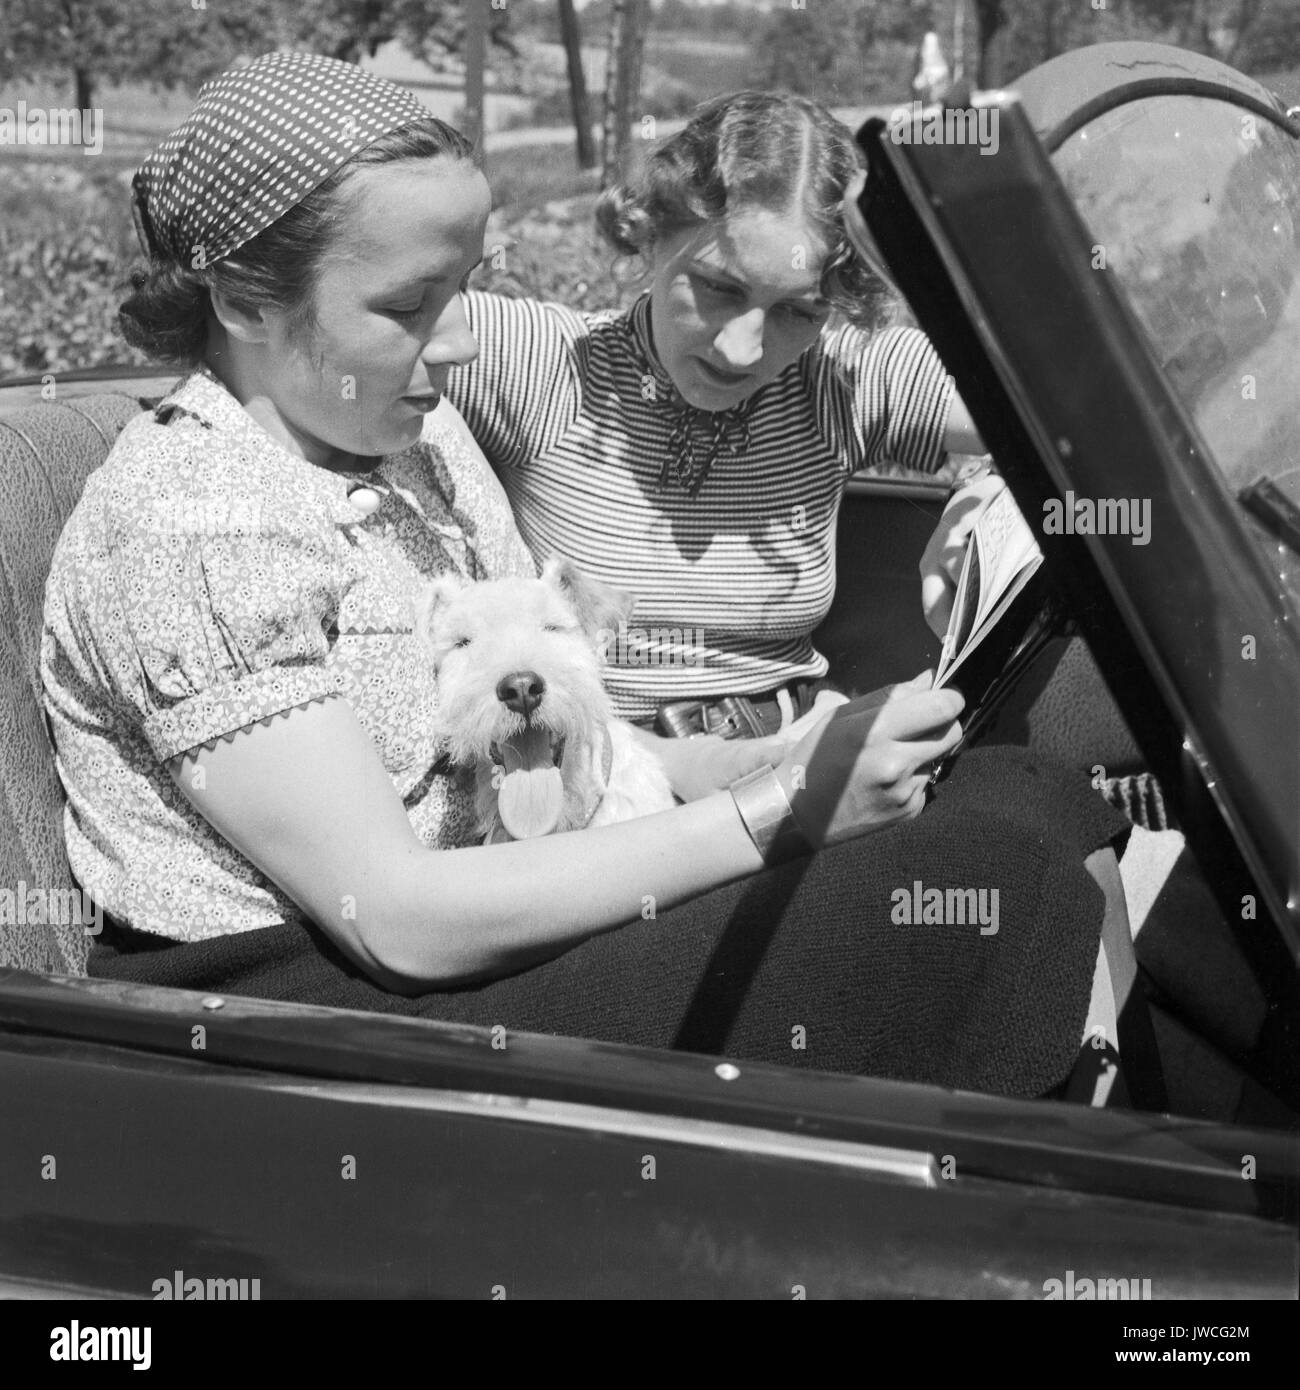 Two women sitting in parked convertible with their dog. - Stock Image